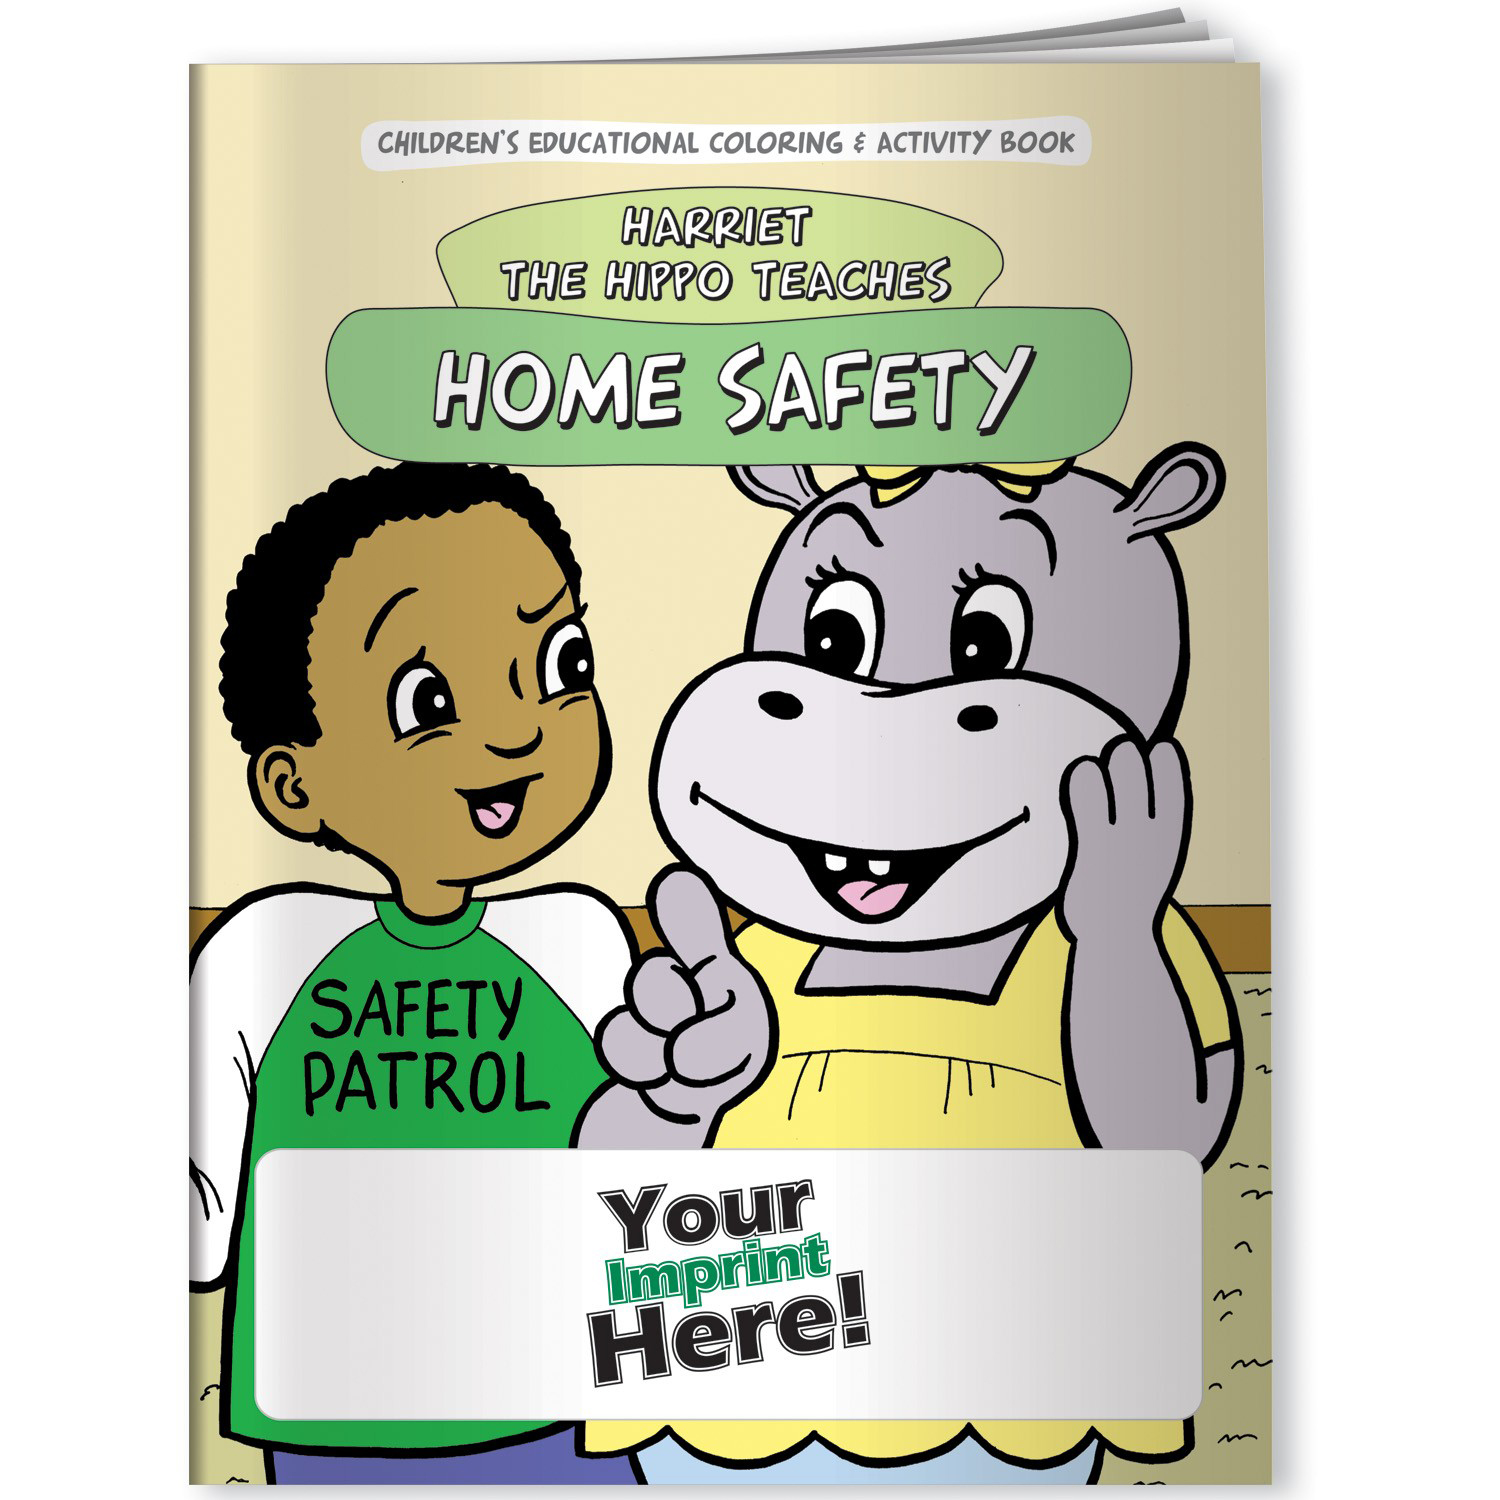 Home safety activity book